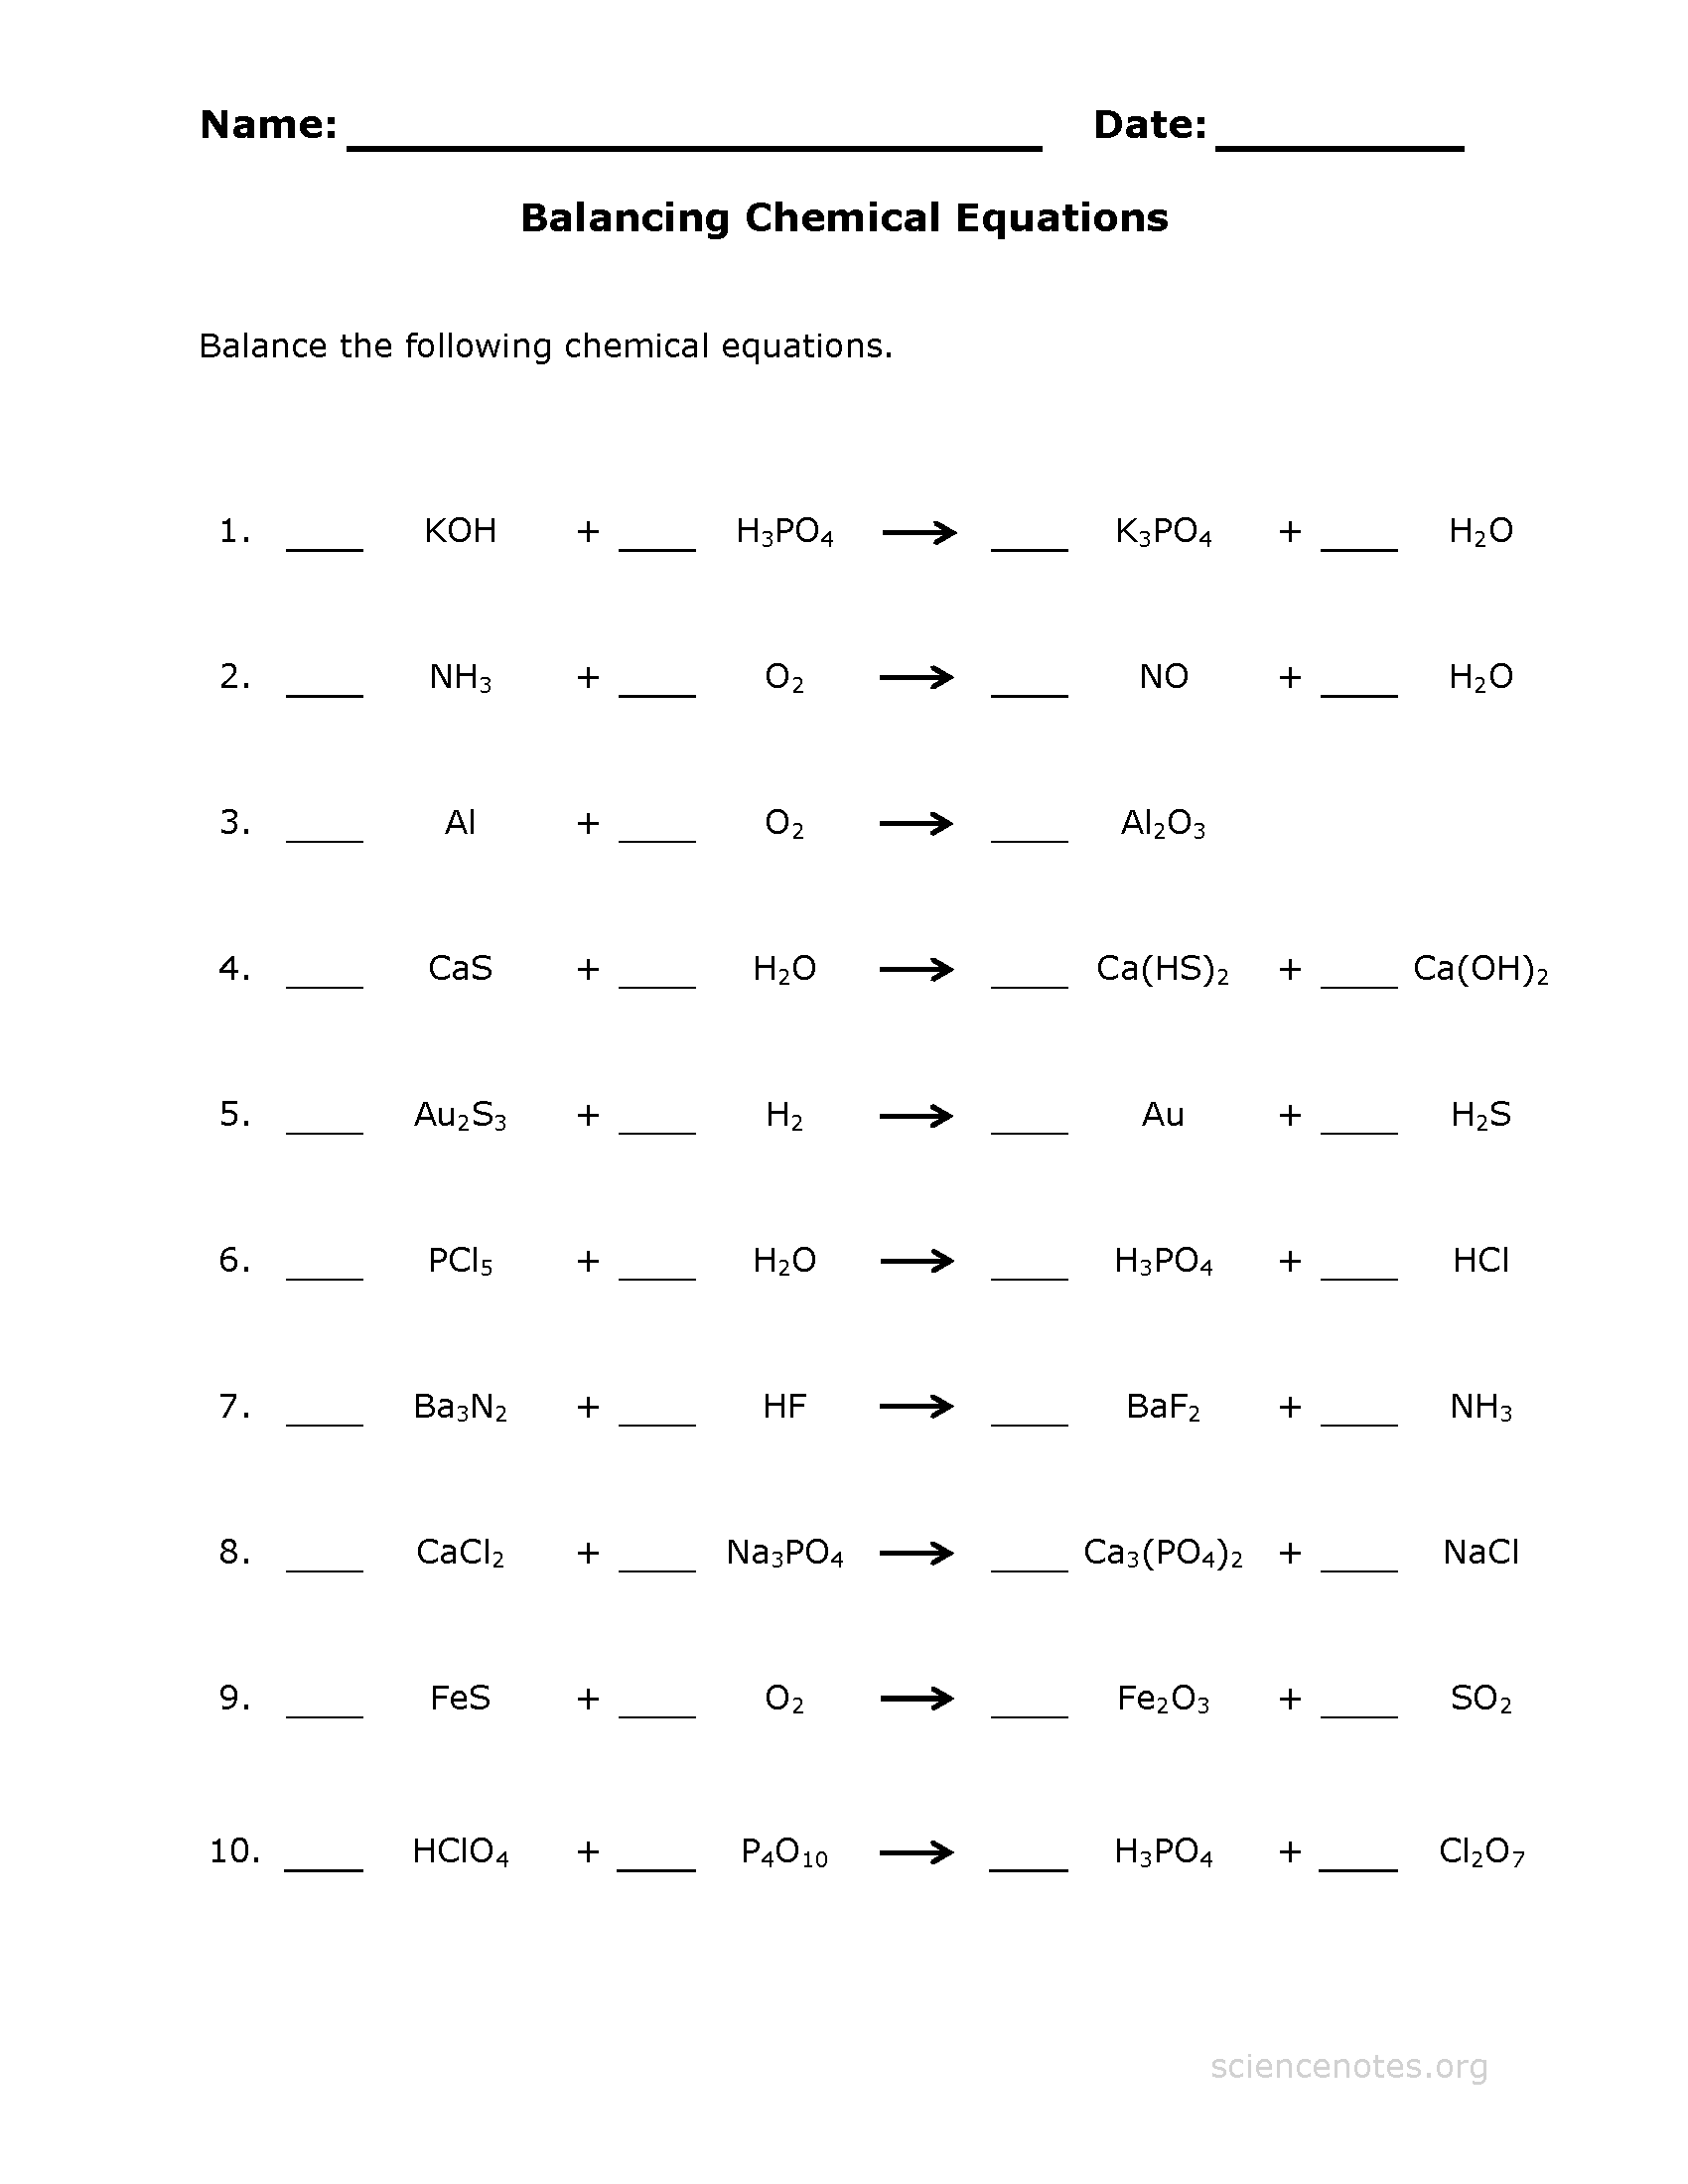 Balancing Chemical Equations Practice Worksheet With Answers - How to Balance  Equations Printable…   Chemical equation [ 2200 x 1700 Pixel ]